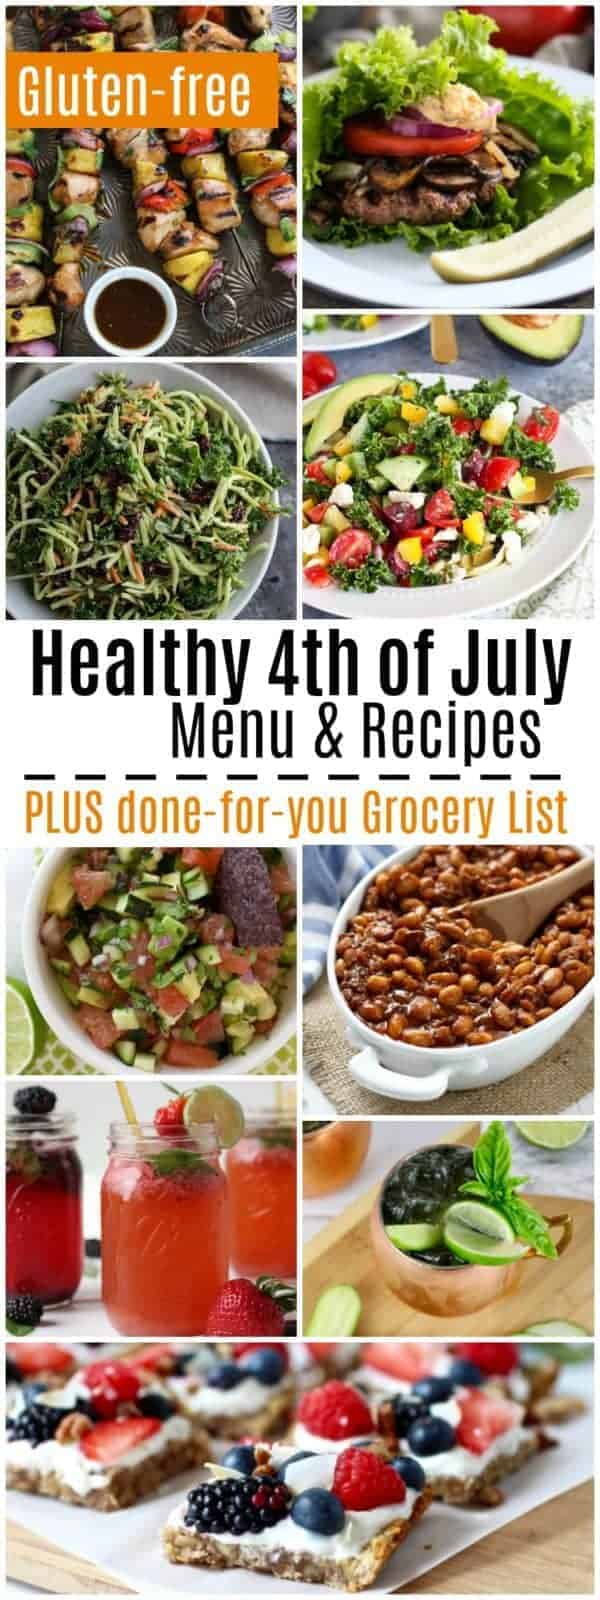 Healthy 4th of July Menu, Recipes & Grocery List | The Real Food Dietitians | https://therealfoodrds.com/healthy-4th-of-july-menu/